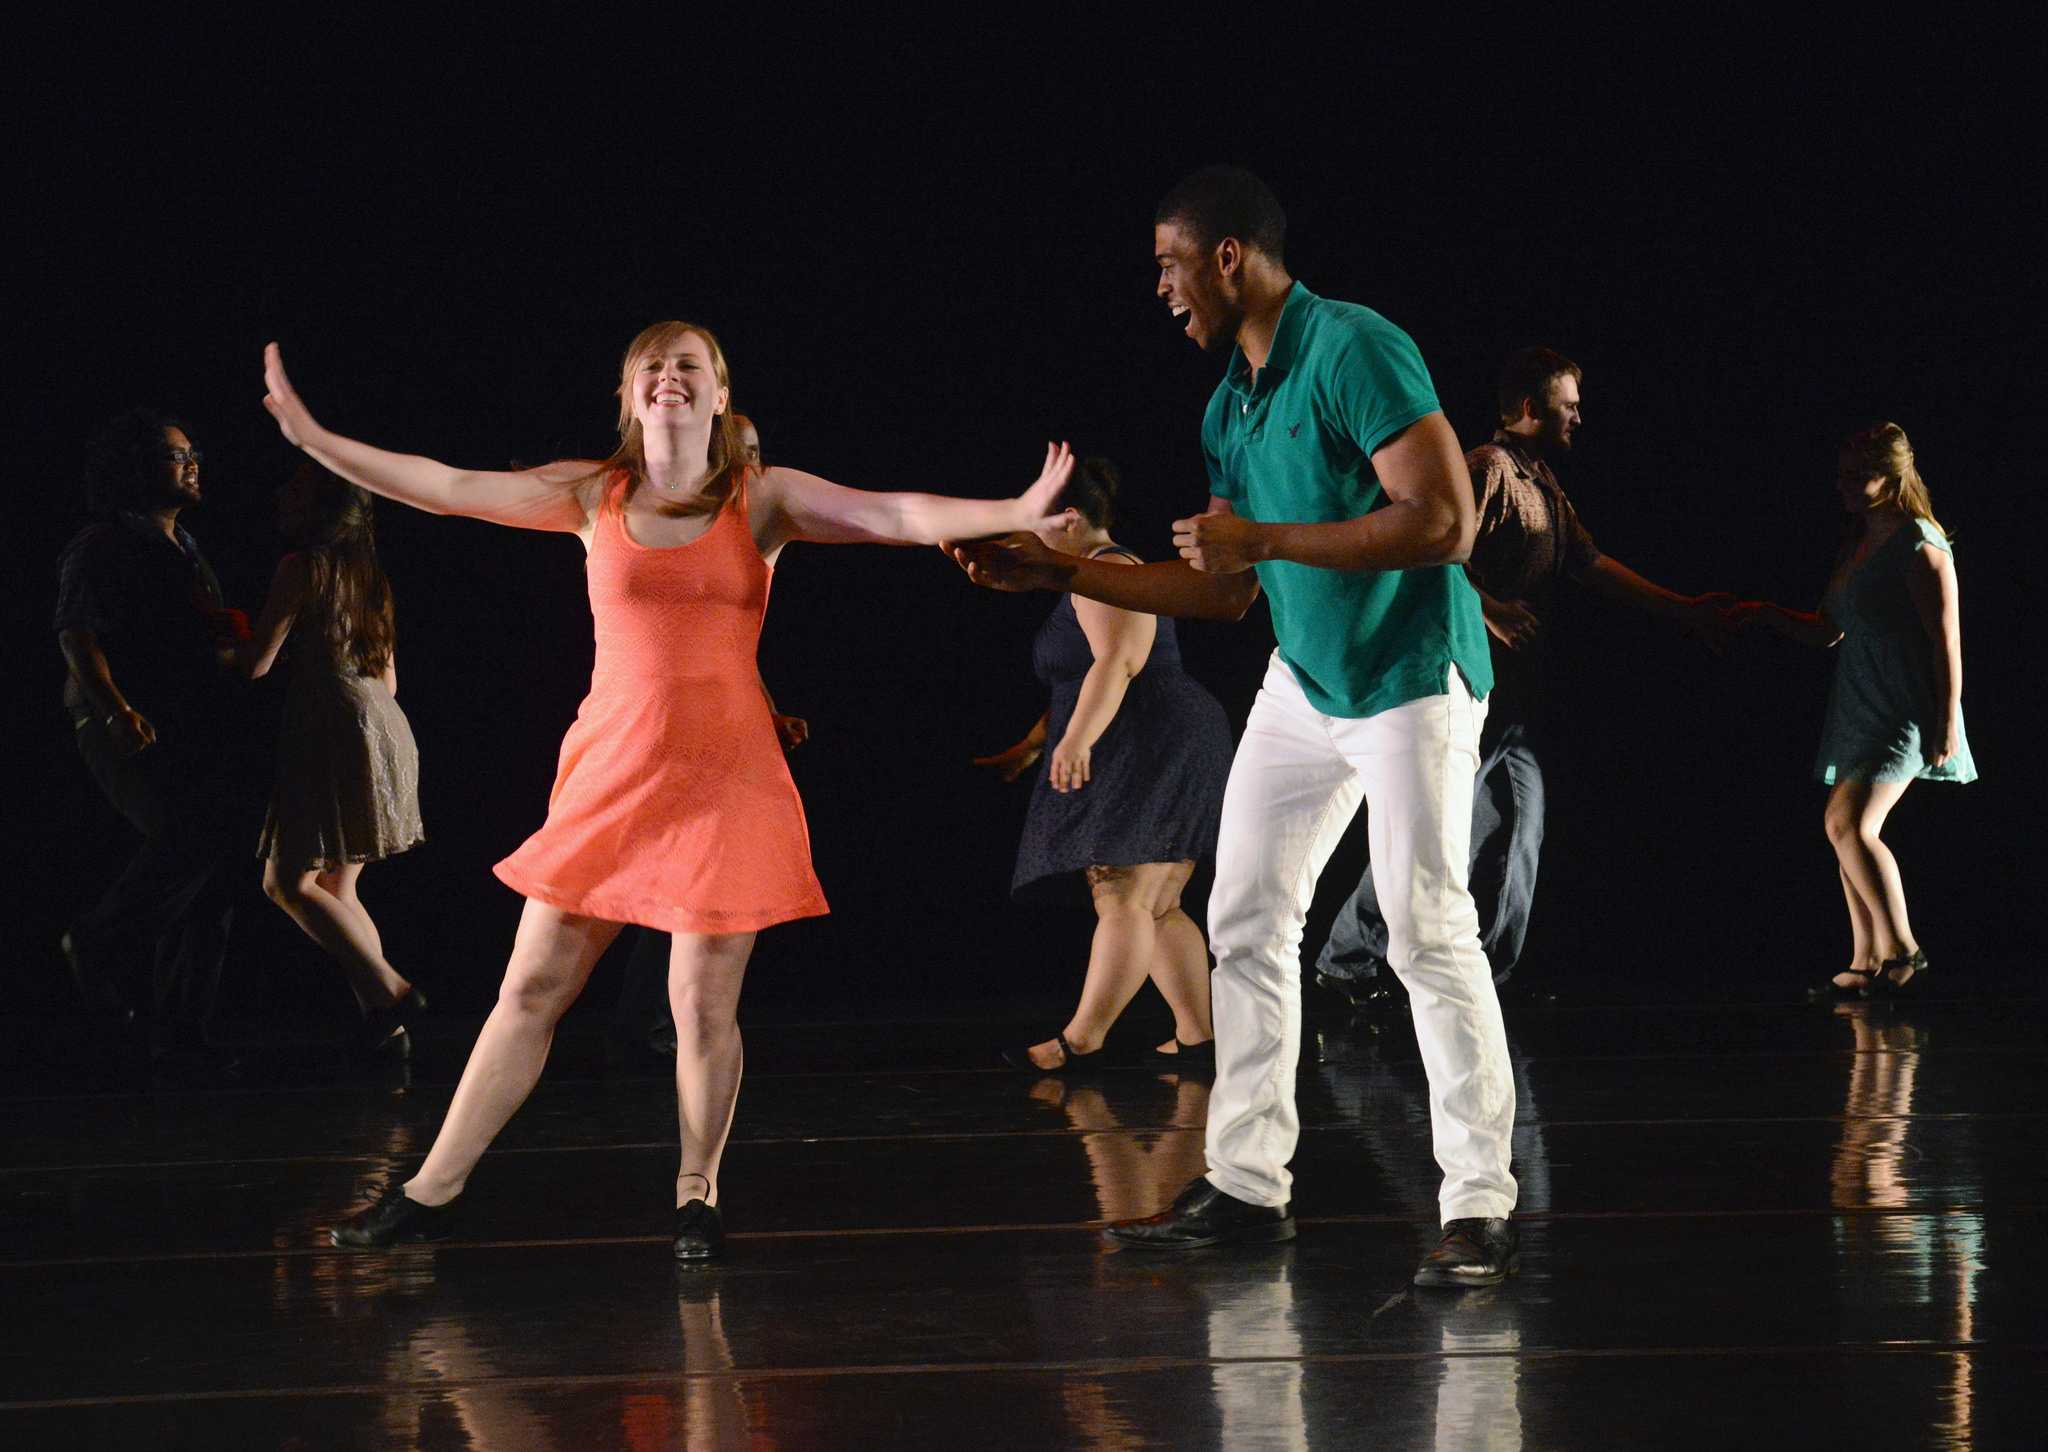 """Autumn Recke, '17, and Akeem Bridgeman, '16, perform in """"Speed Dating"""" on April 9 which is the first of a four-part series choreographed by Betsy Sumerfield. The dance was set to the song """"Swing Set"""" by Jurassic 5."""